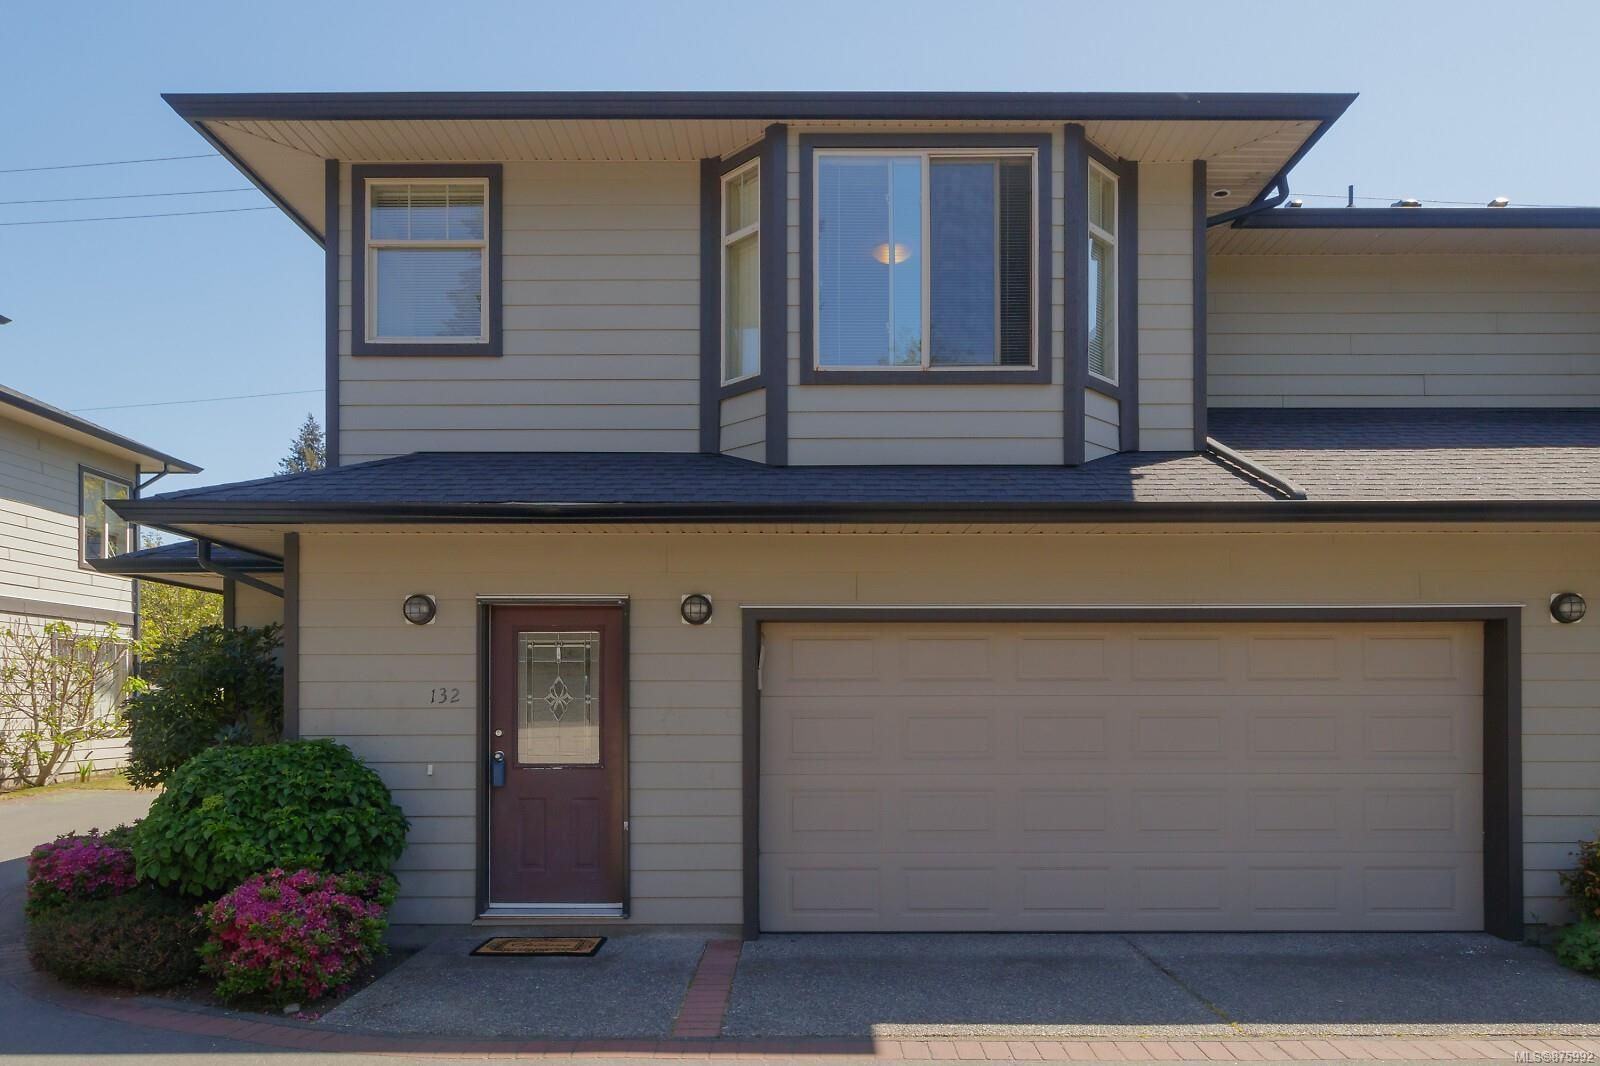 Main Photo: 132 710 Massie Dr in : La Langford Proper Row/Townhouse for sale (Langford)  : MLS®# 875992